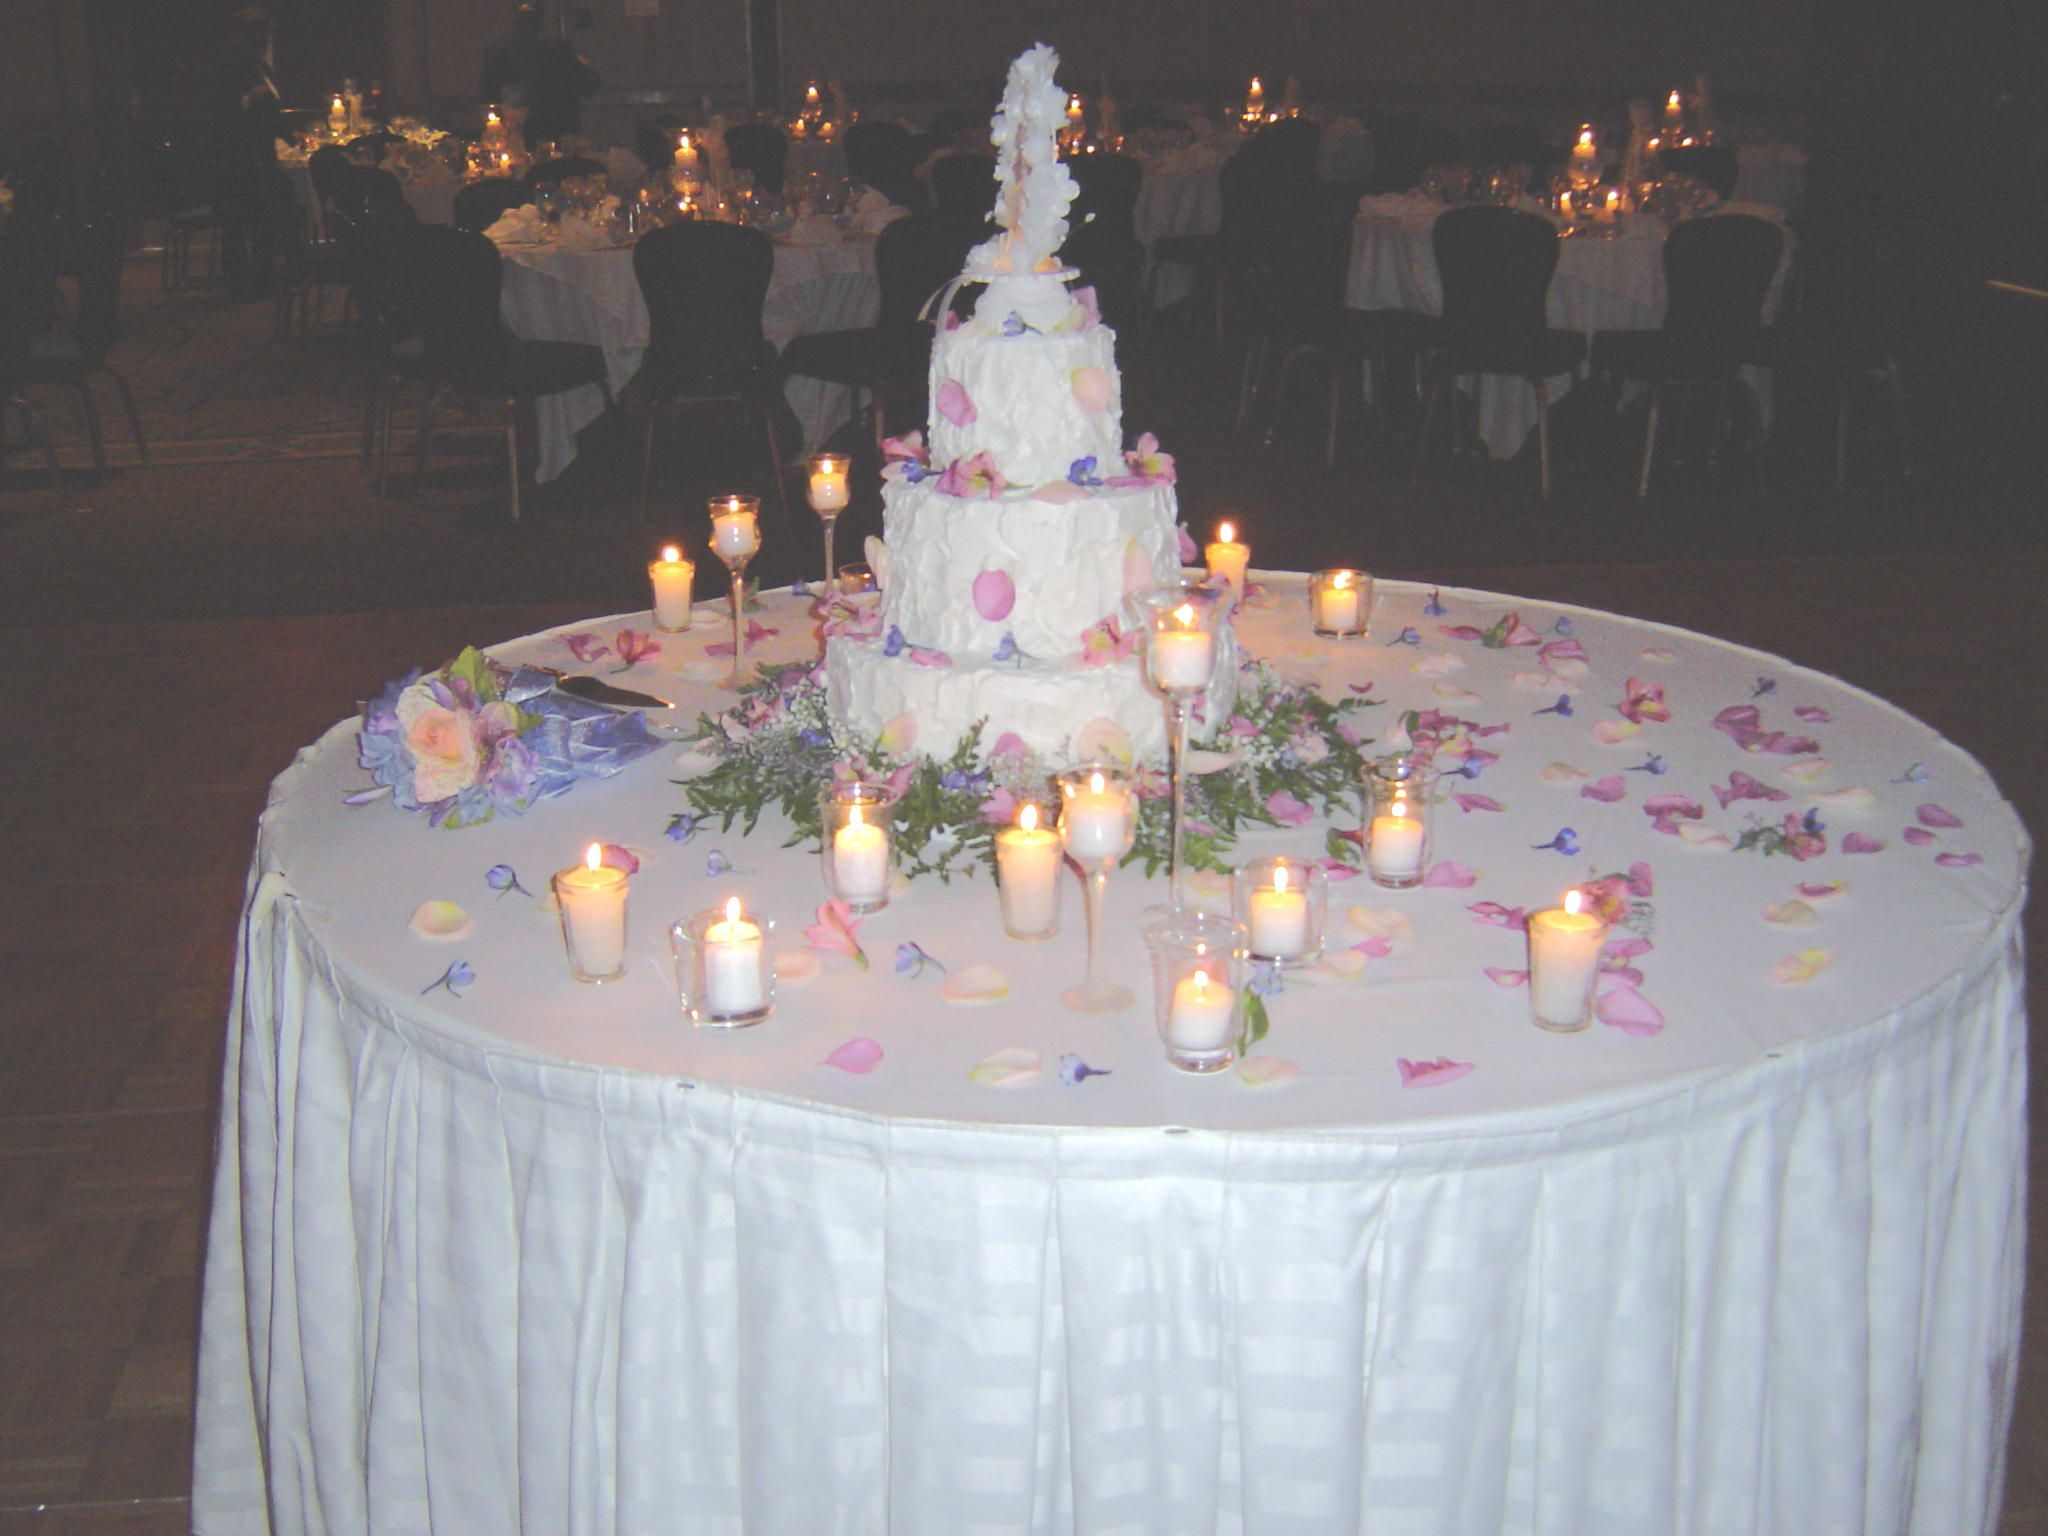 Wedding reception cake table decorating caketable22 wedding cake wedding reception cake table decorating caketable22 wedding cake table wedding decorations junglespirit Gallery